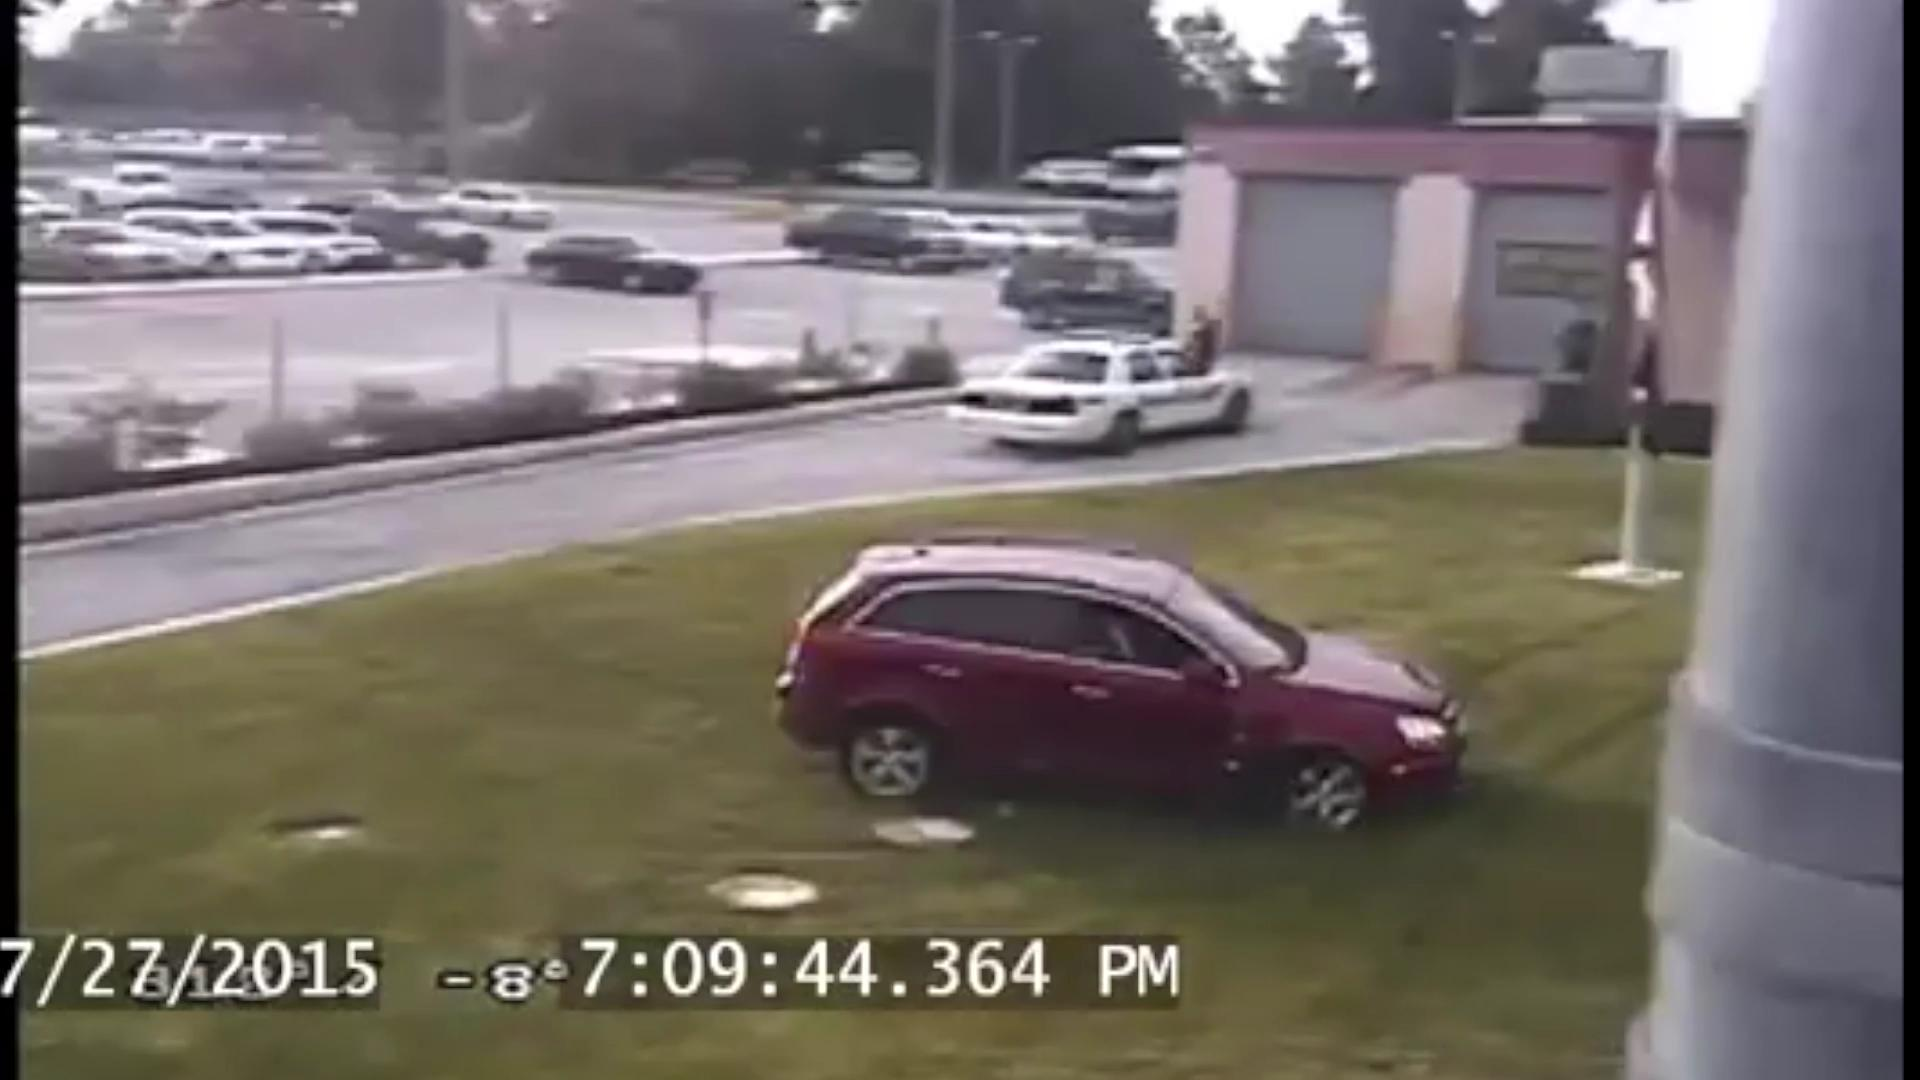 Man drives over jail lawn, crashes into flagpole, gets arrested